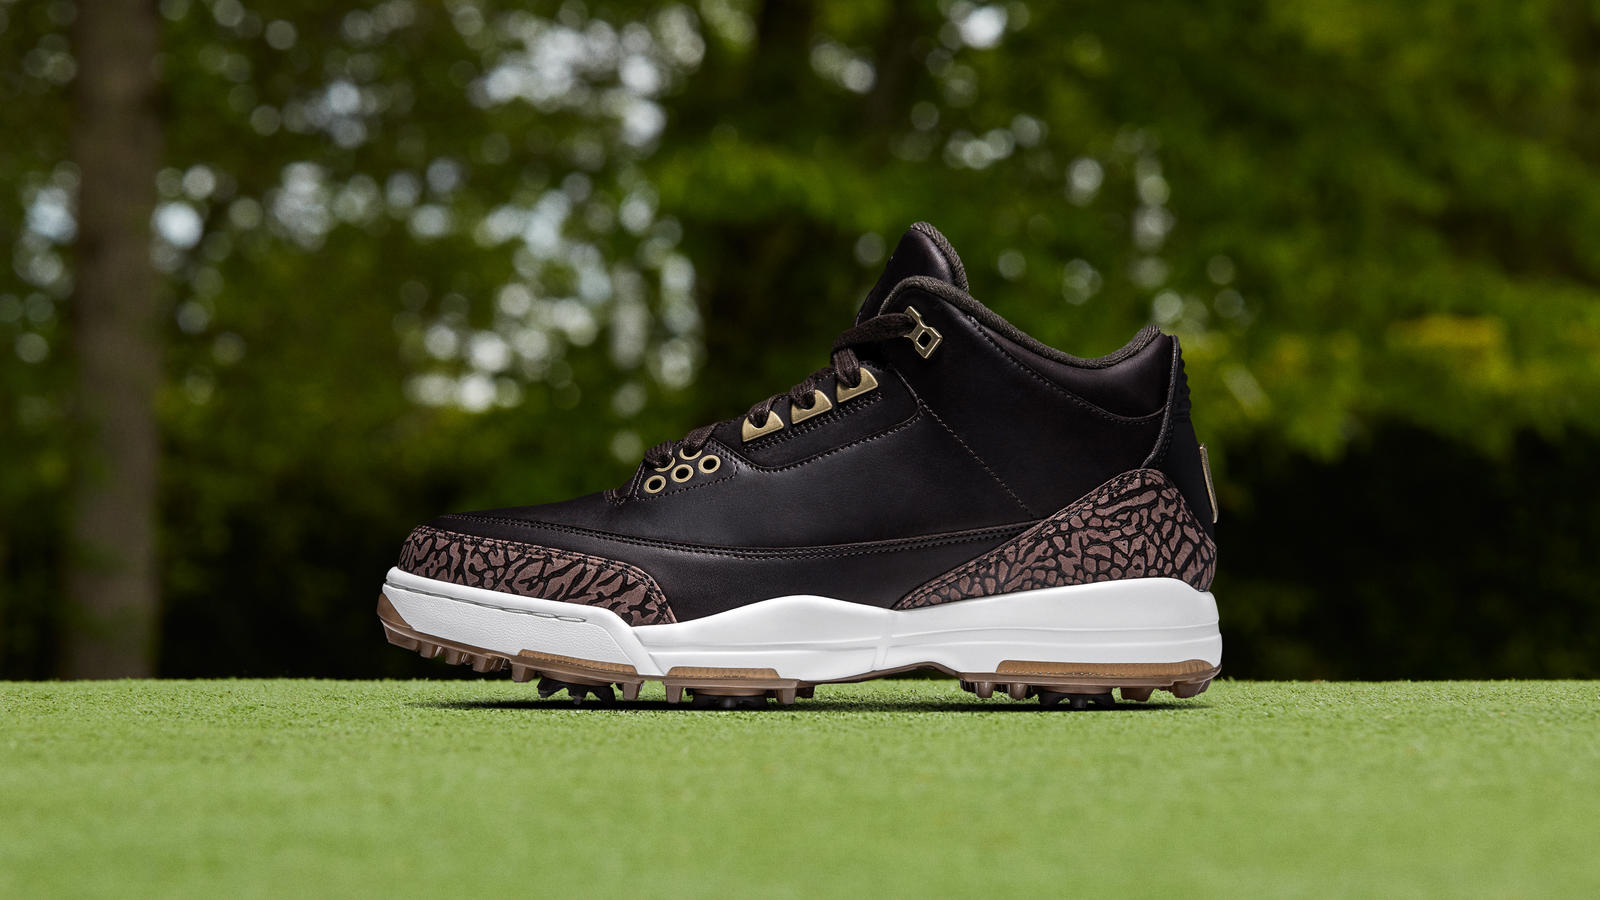 6600c5db0cecee Air Jordan III Golf Premium - Nike News